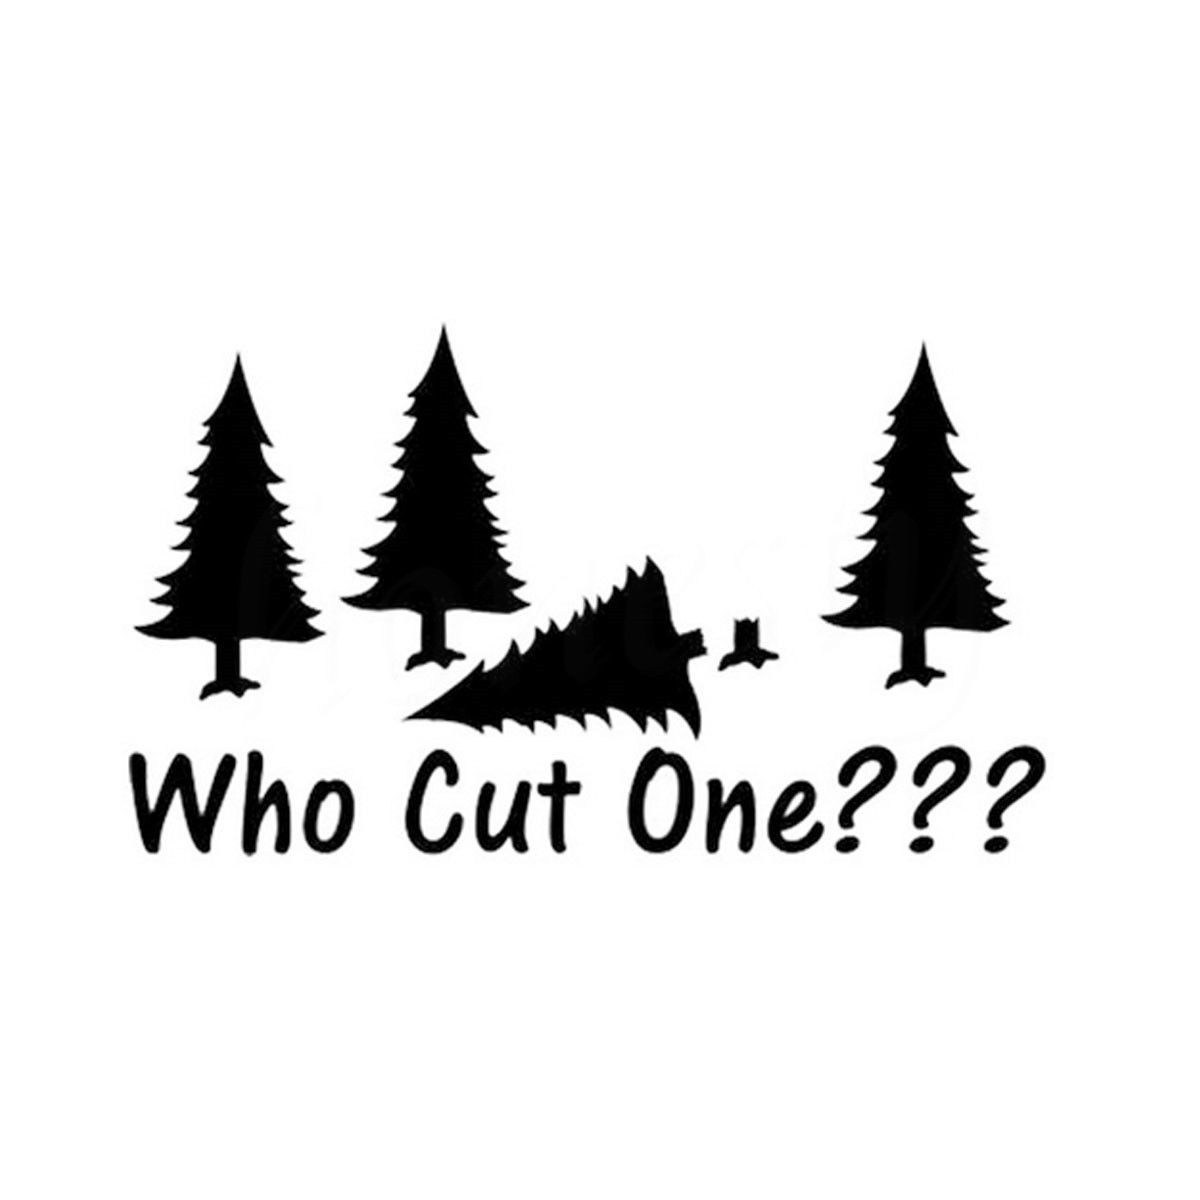 Fashion Who Cut One Tree Felling Funny Car Sticker Wall Home Glass Window Door Laptop Vinyl Decal 17 8cmX10 5cm in Car Stickers from Automobiles Motorcycles